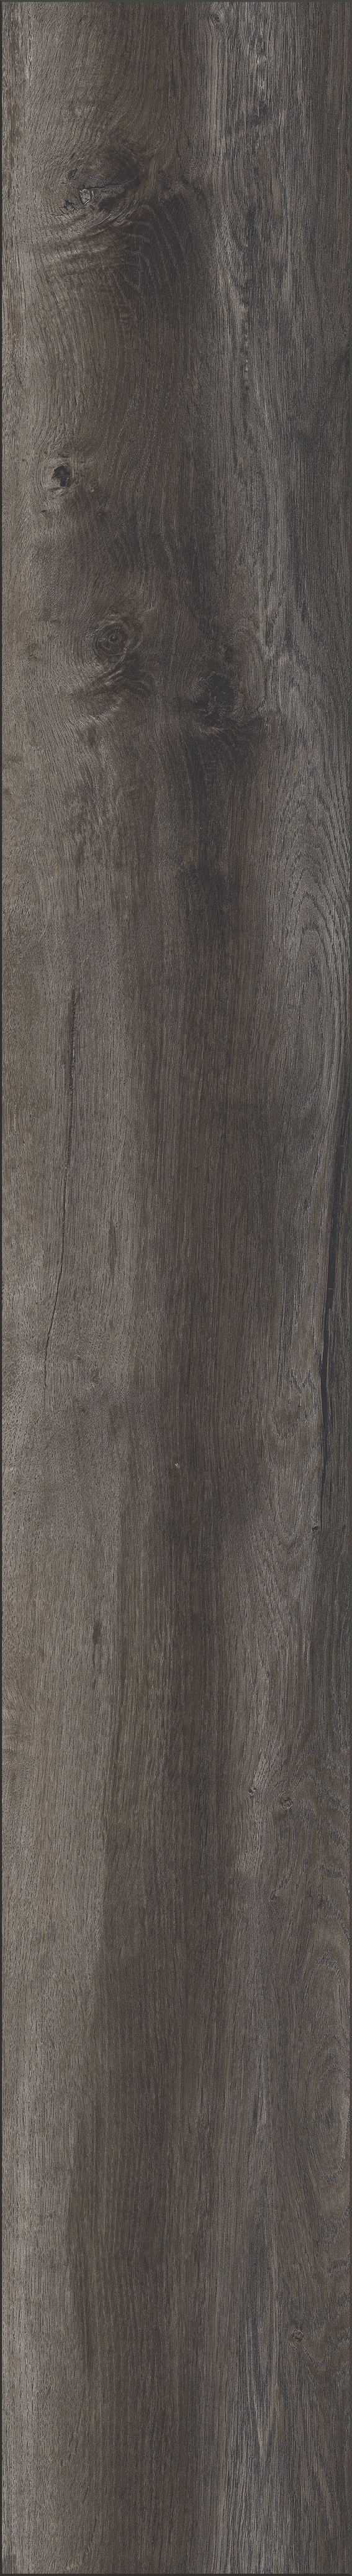 kronotex robusto laminat harbour oak dunkel d 3573 von kronotex. Black Bedroom Furniture Sets. Home Design Ideas